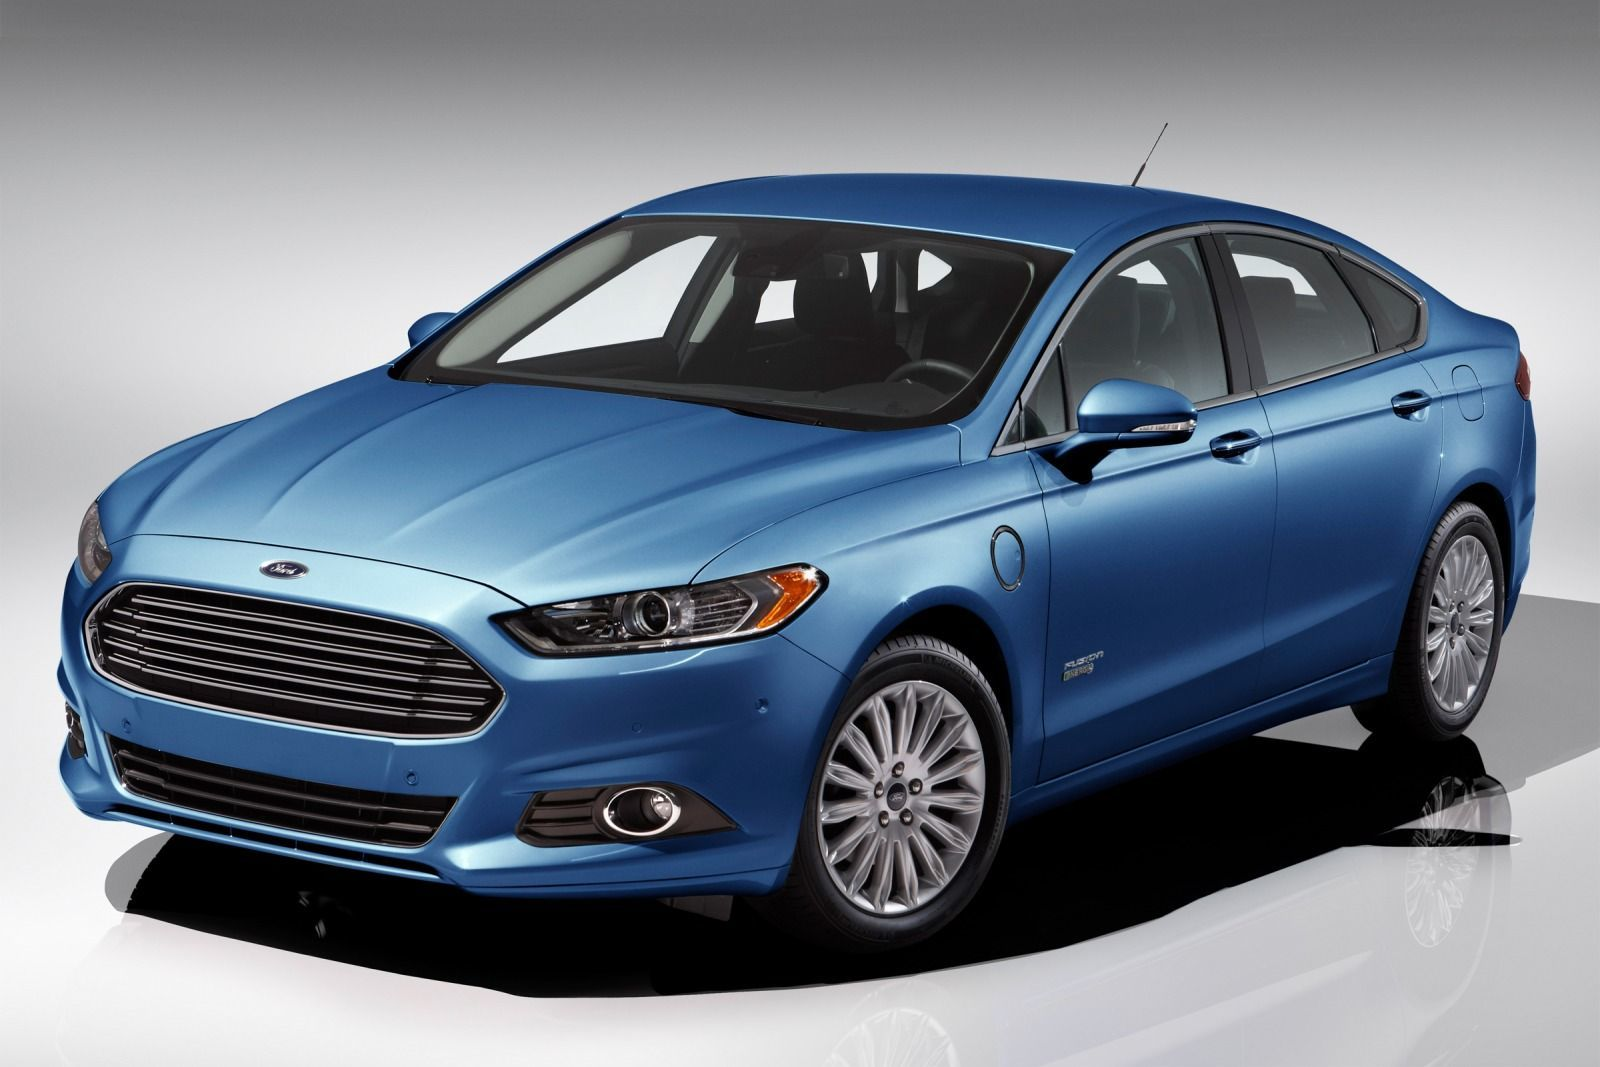 2016 Ford Fusion Energi for Sale in Ontario at Gentry Ford - Ontario